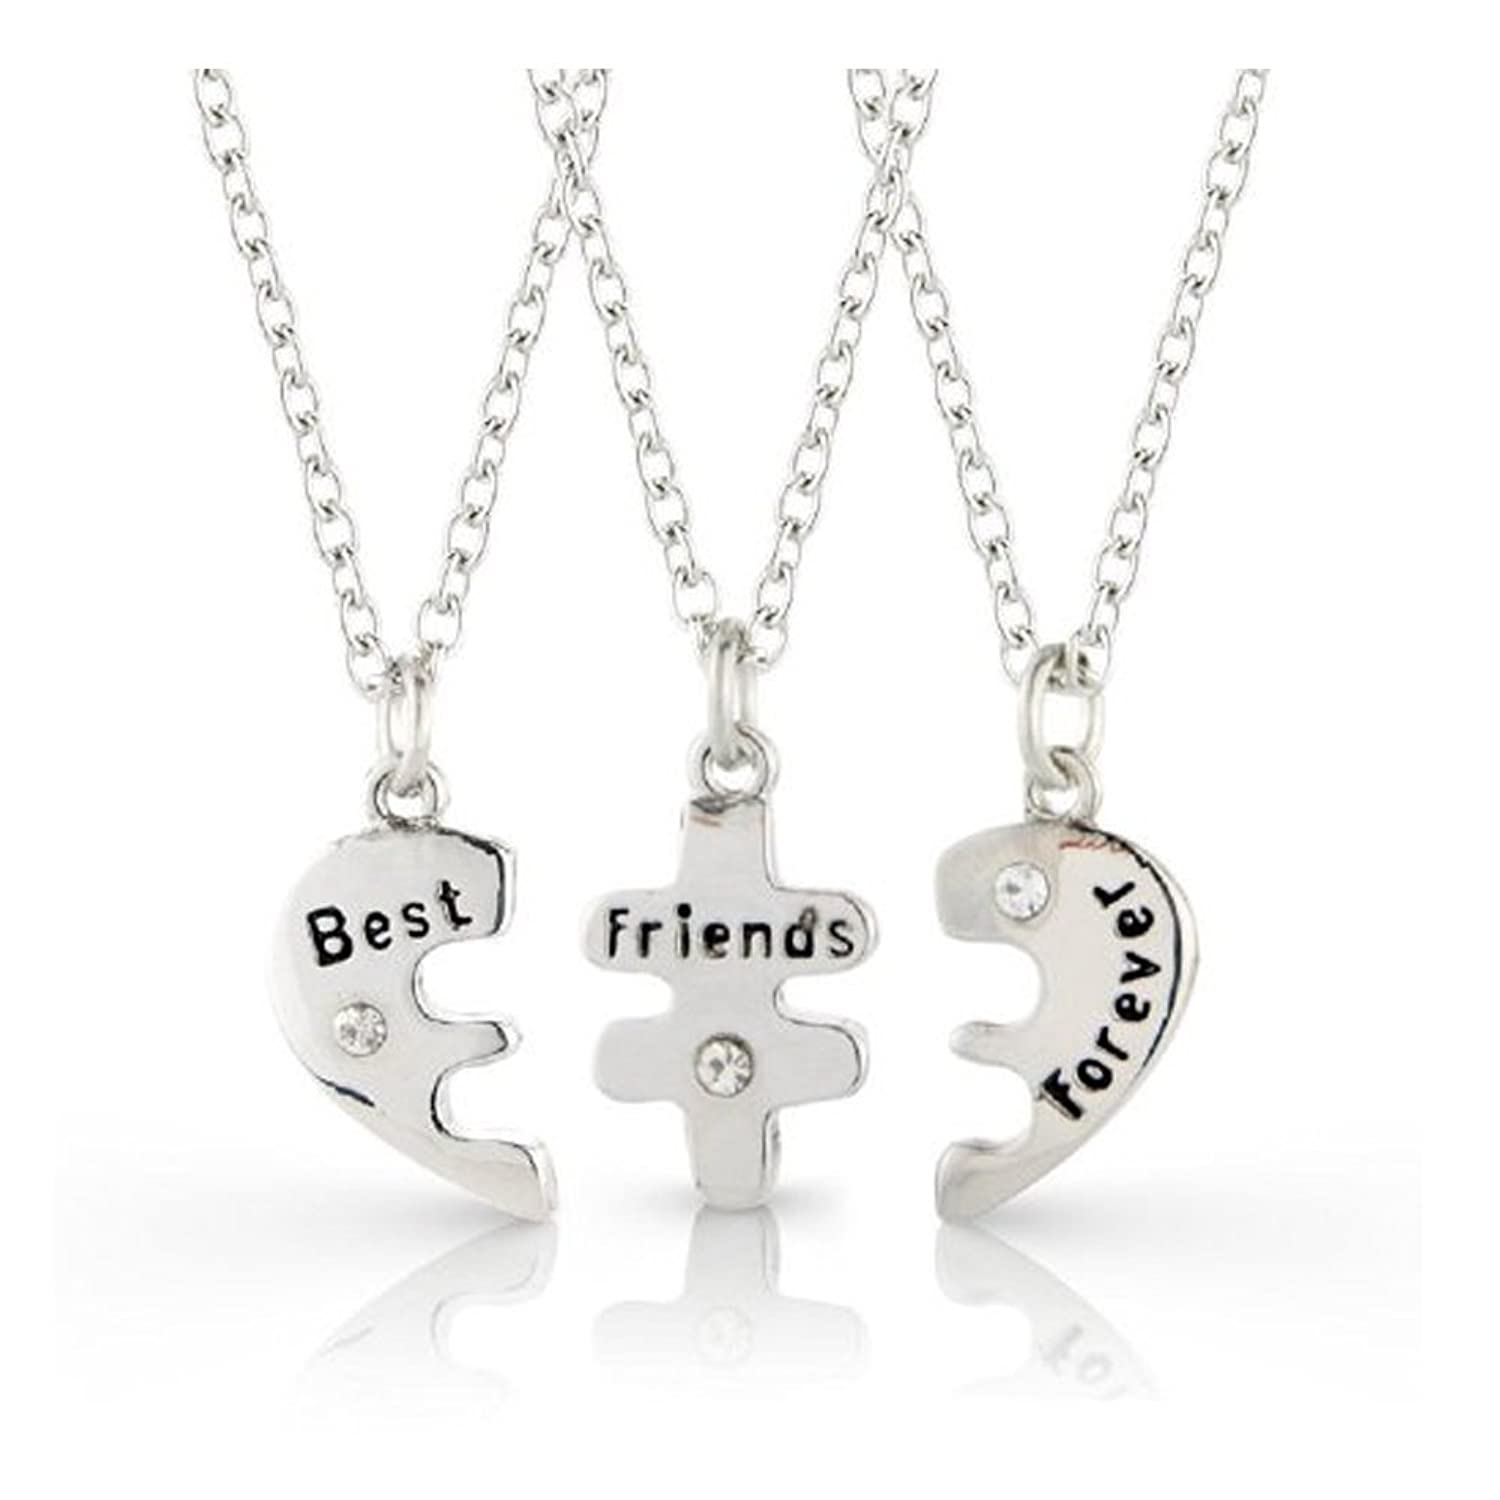 lockets friend place nerdtastic piece nakama best product bff necklace one